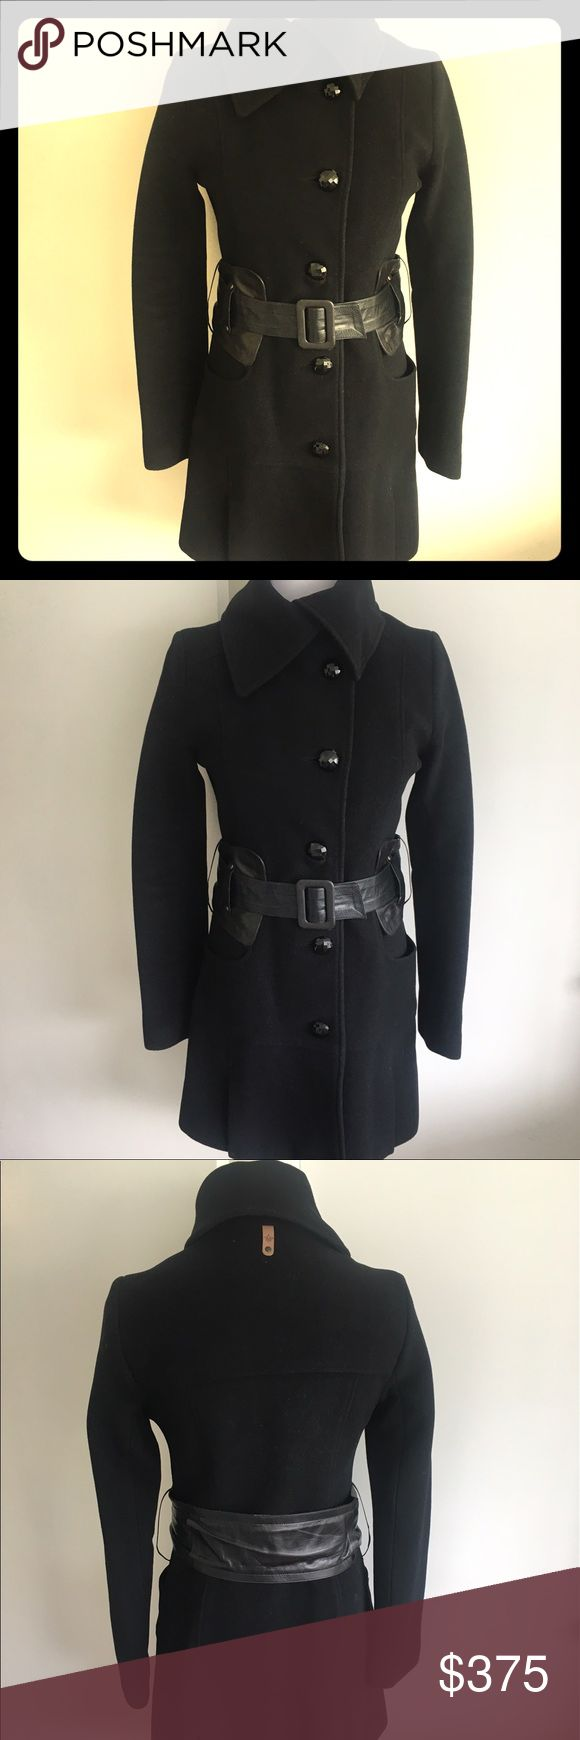 Mackage Wool Coat Soft wool with genuine leather belt and black jewel buttons; barely worn, no signs of wear, like-new condition; smoke/pet free home Mackage Jackets & Coats